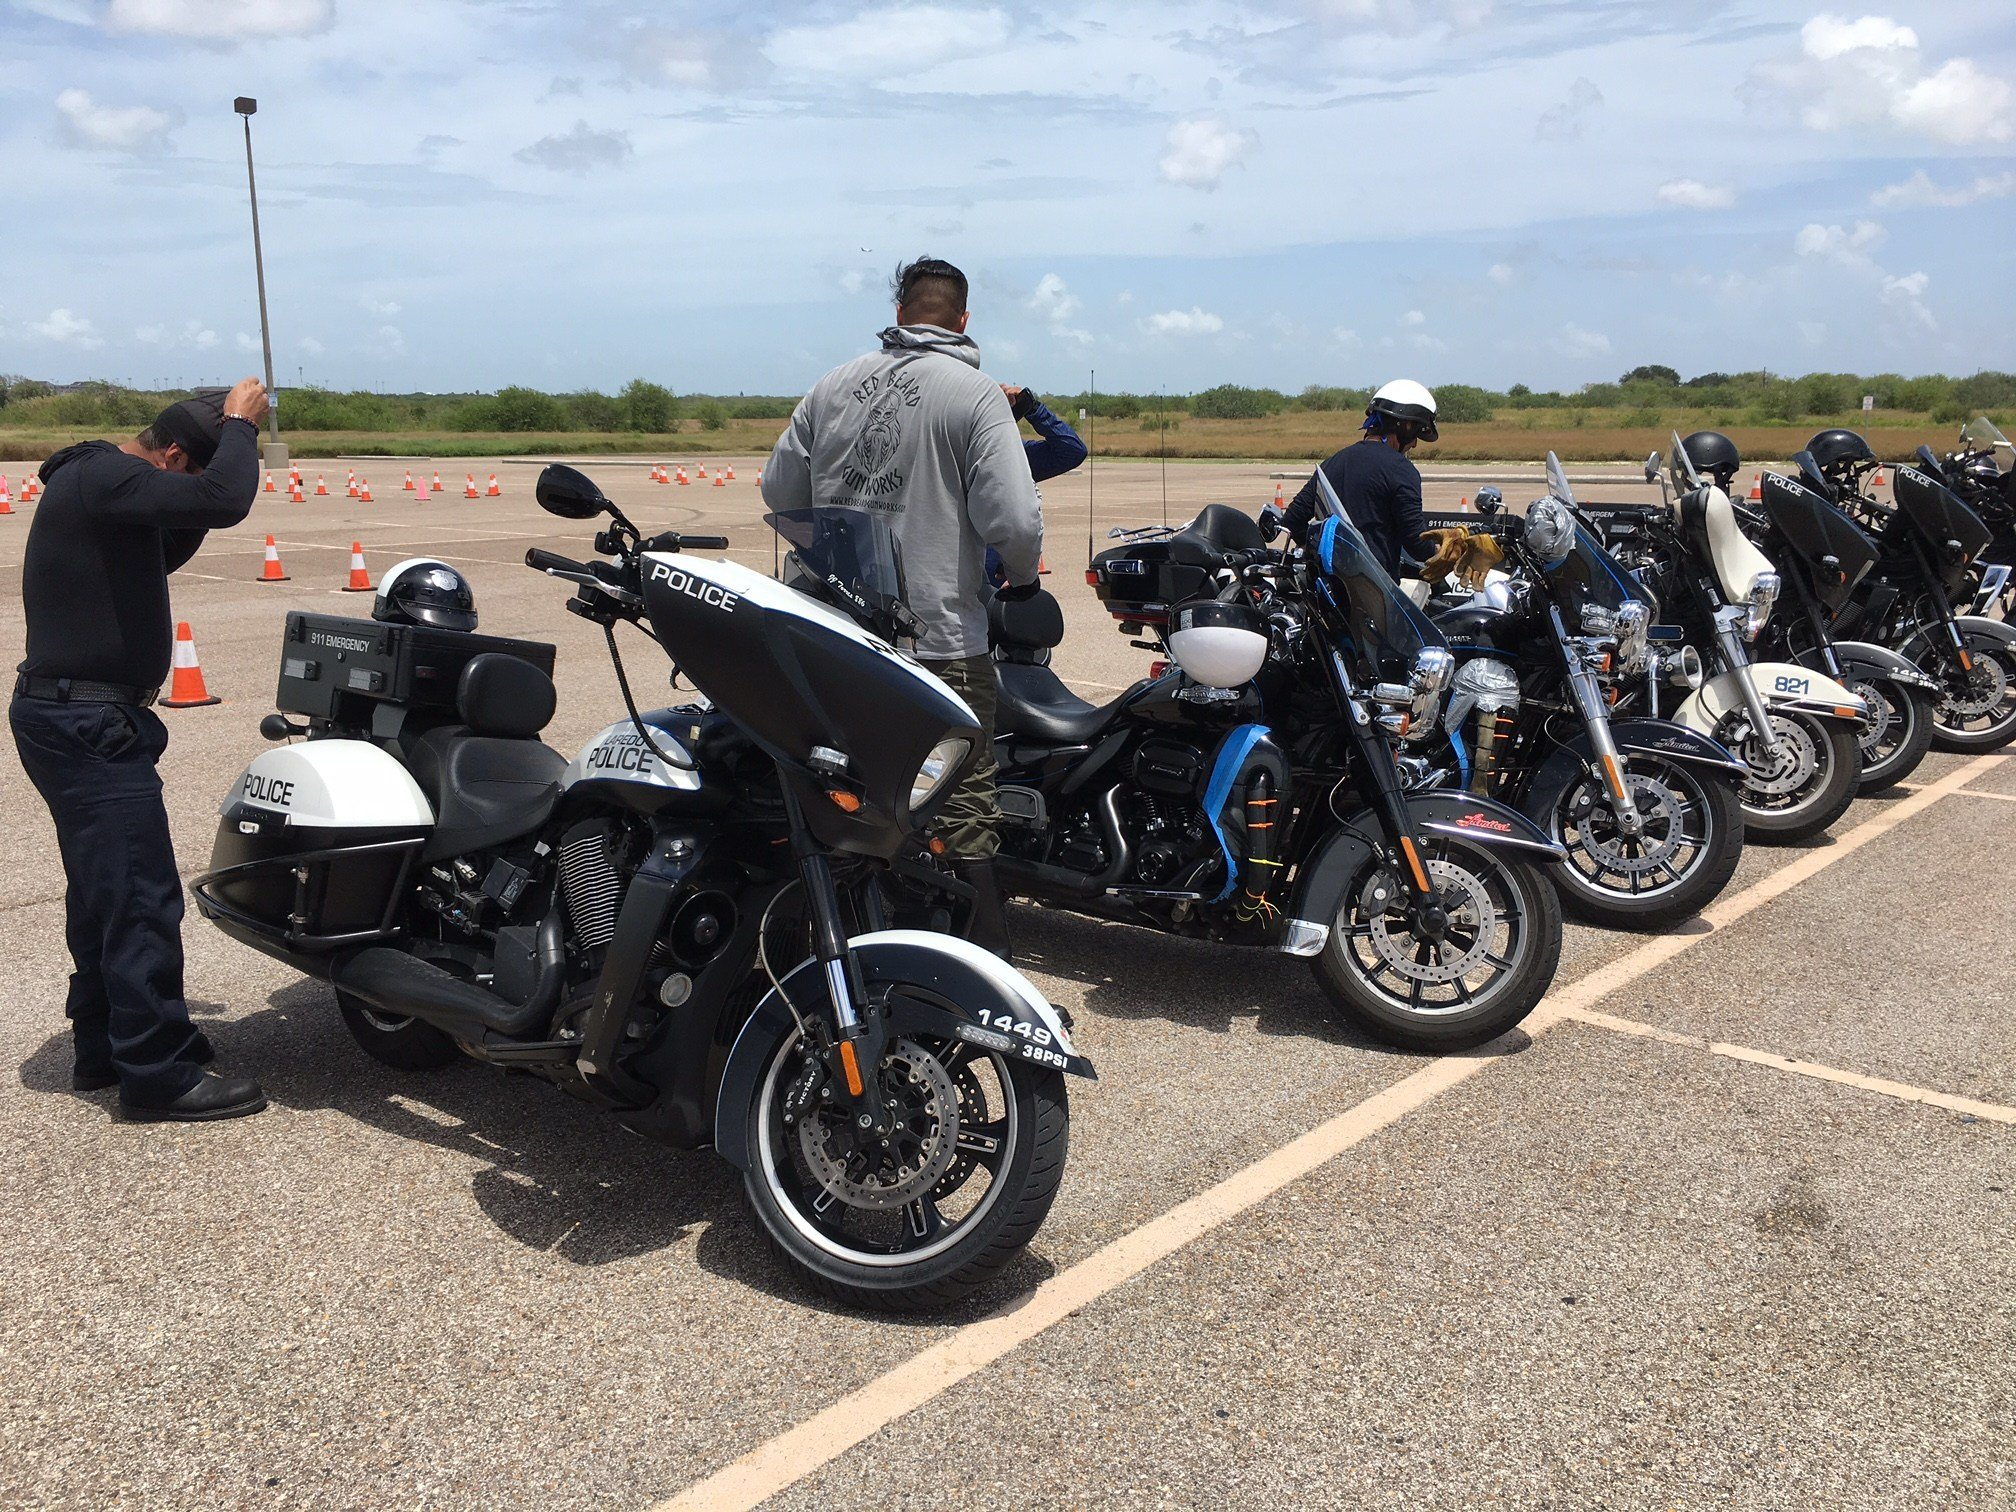 Officers lined up for training needed to certify them before hitting the road on two wheels.